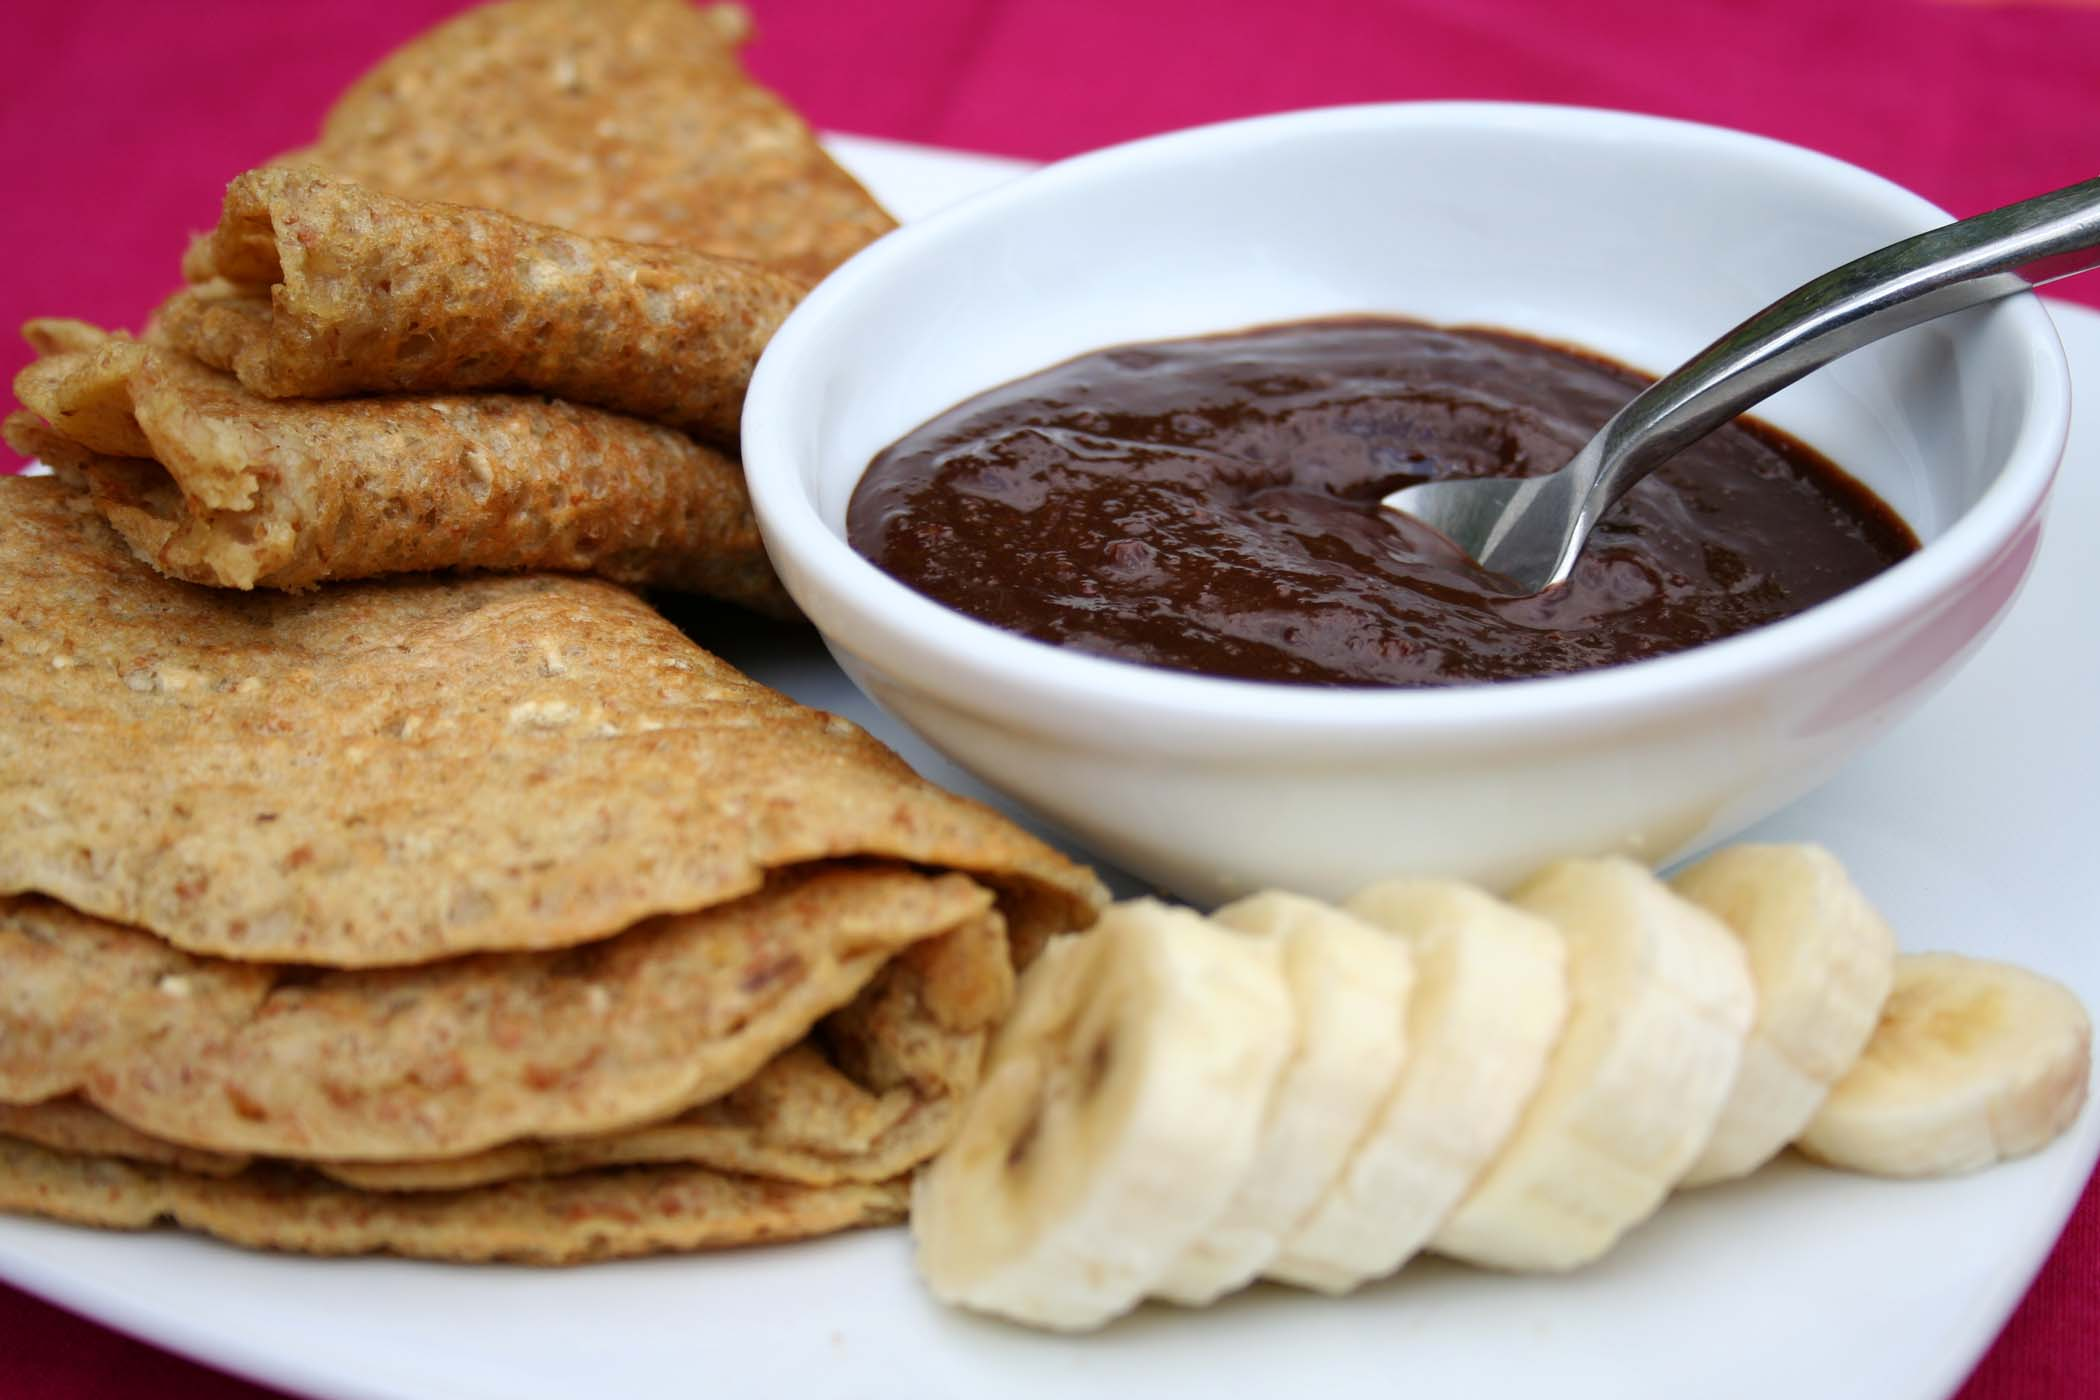 Vegan Pancakes with Chocolate-Banana cream